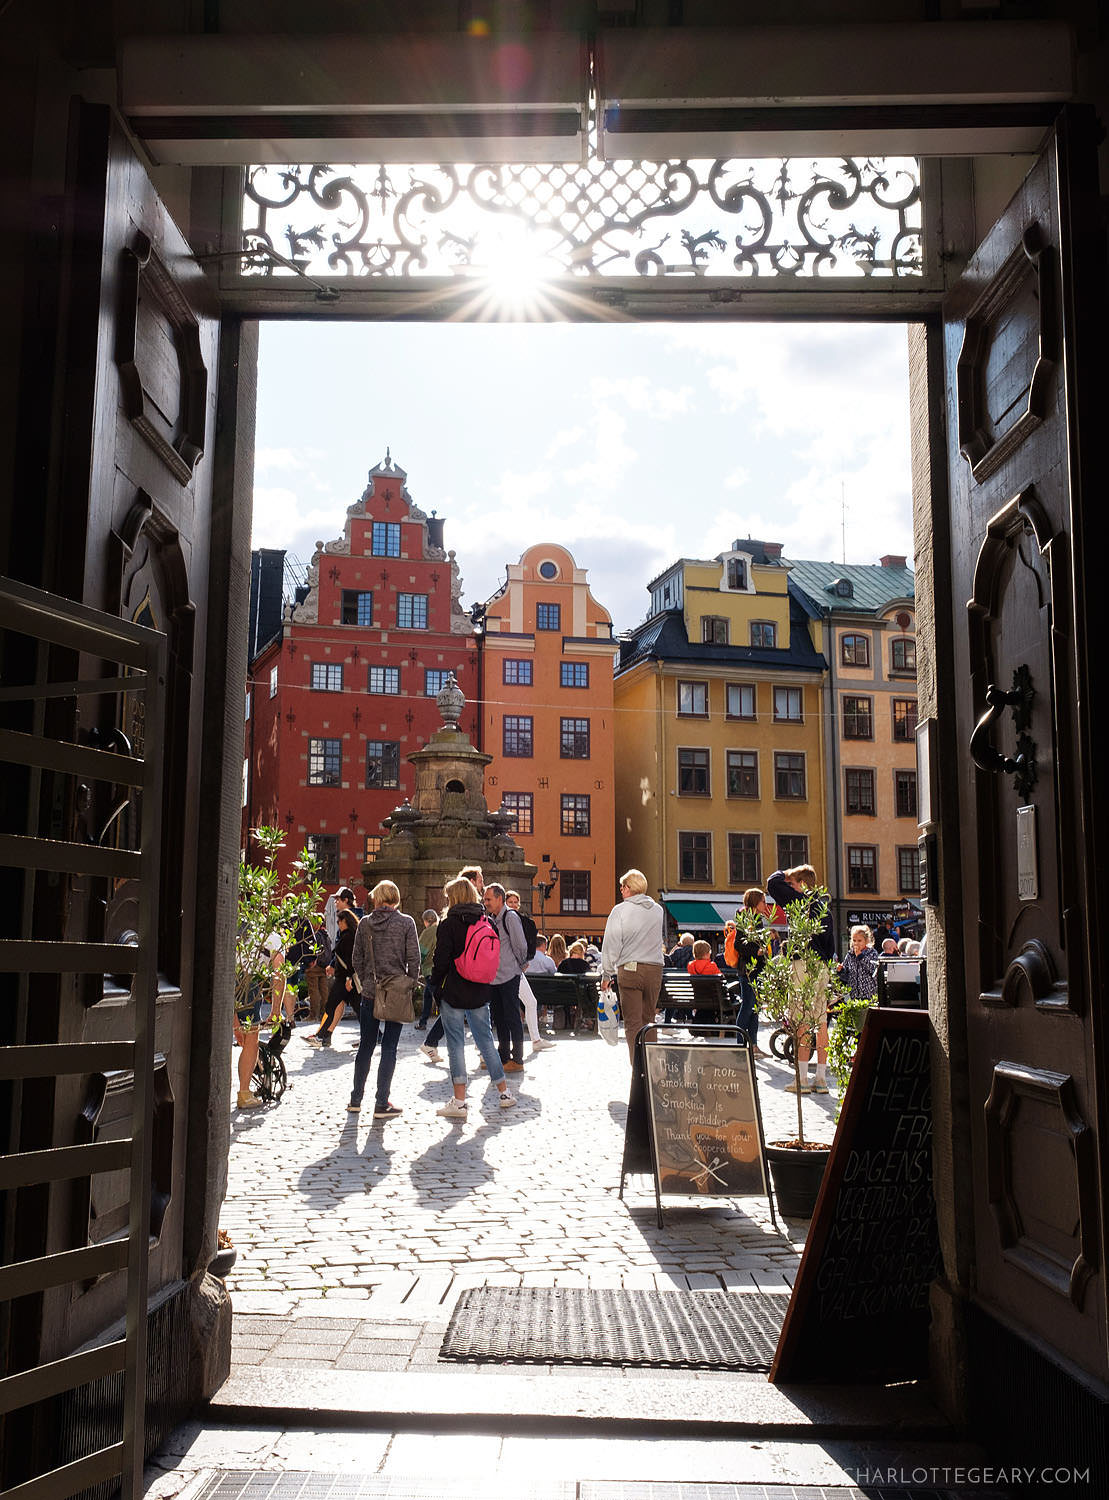 Stortorget, in Stockholm's old town of Gamla Stan